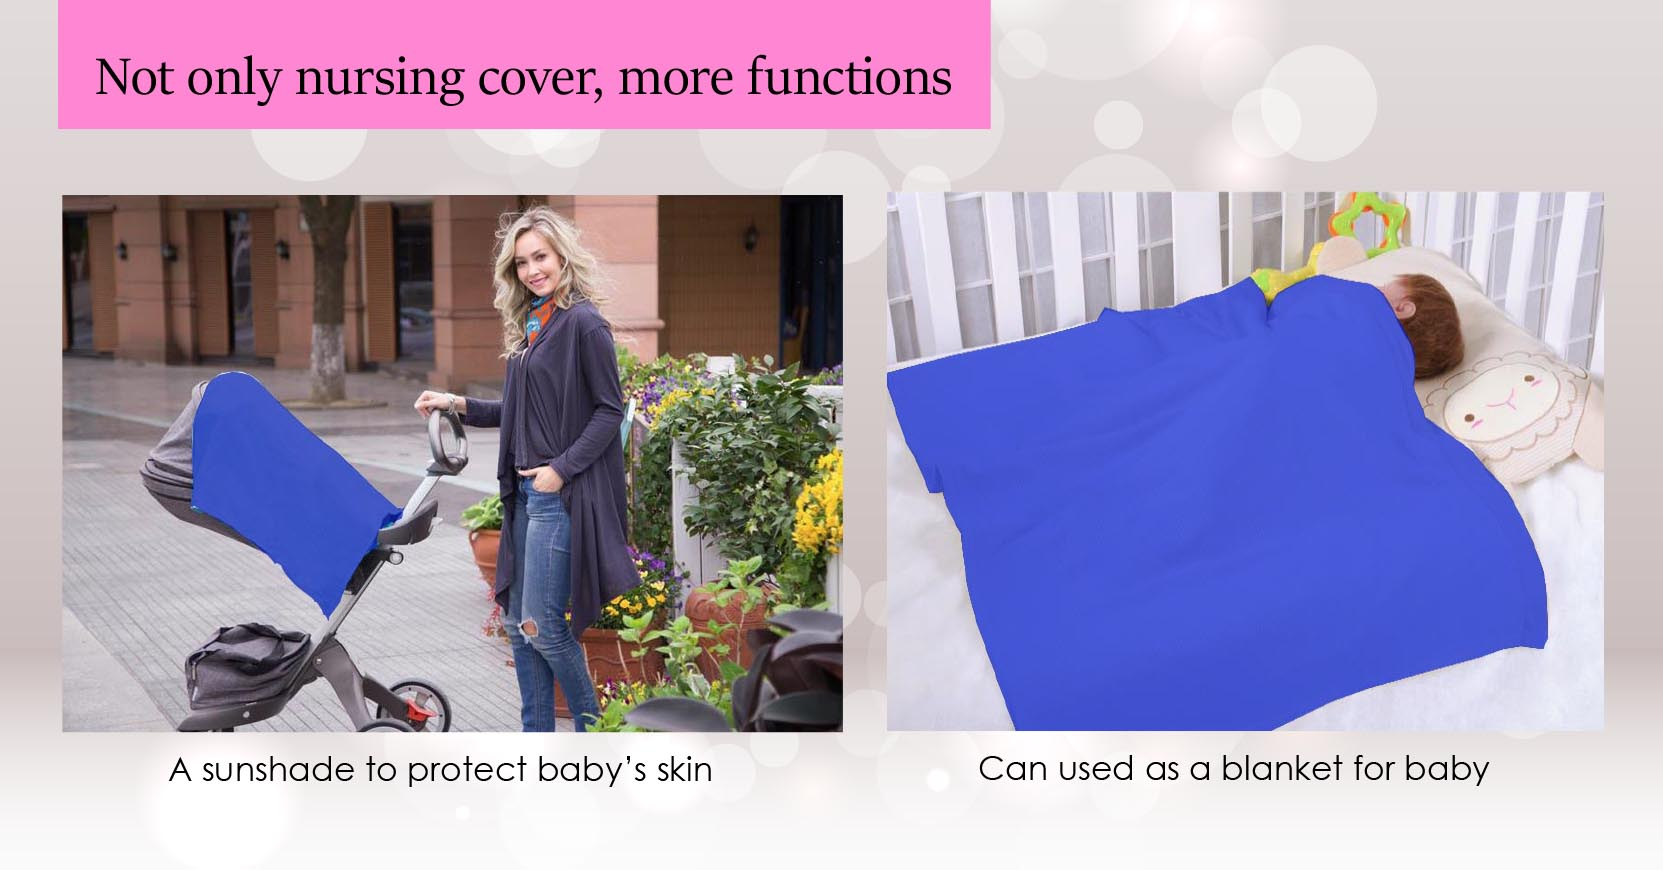 Not only nursing cover, more functions